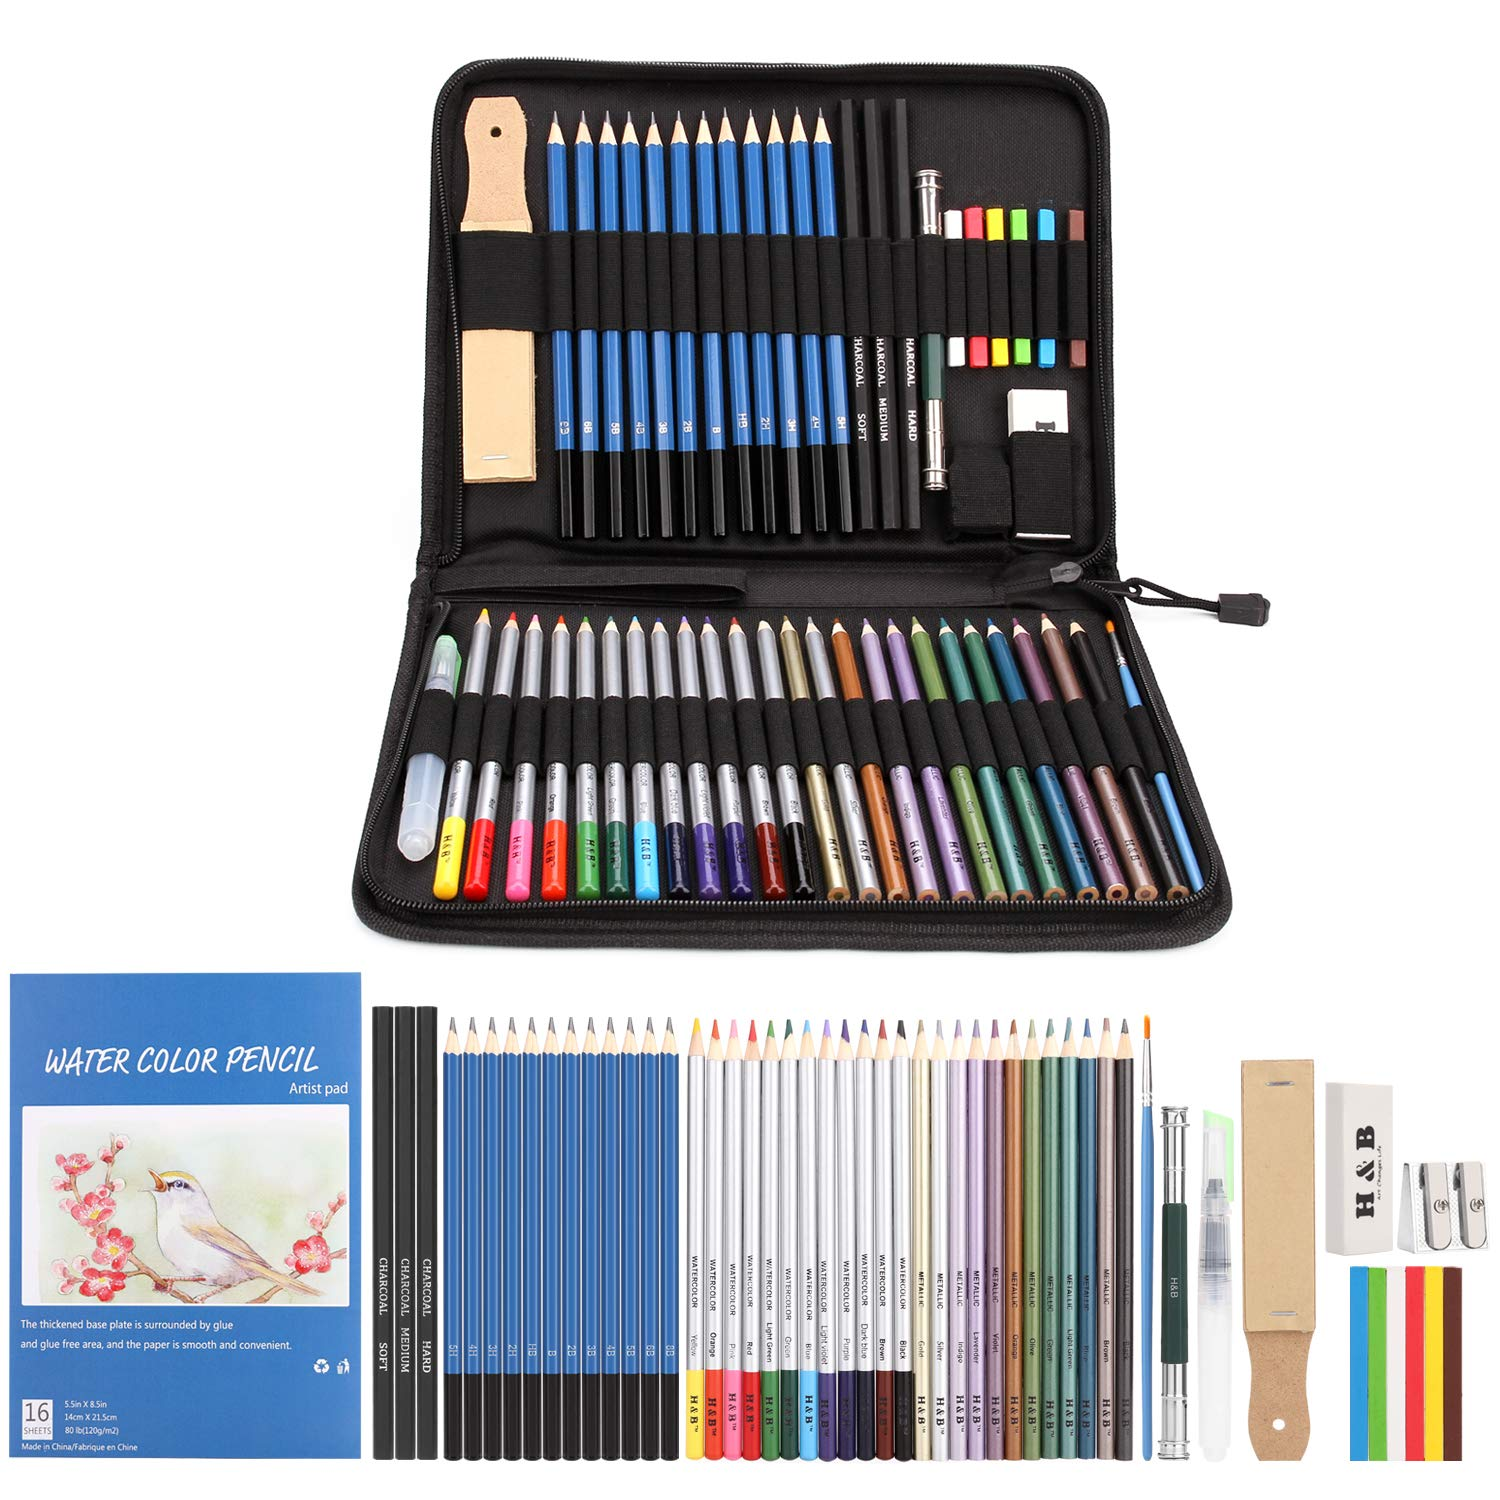 AGPTEK 53pcs Drawing and Sketching Pencil Set, with Pencil, Watercolor Pencil, Sketching Pencil Set & Canvas Zipper Case, Ideal for Artists, Sketchers, Teachers & Students by AGPTEK